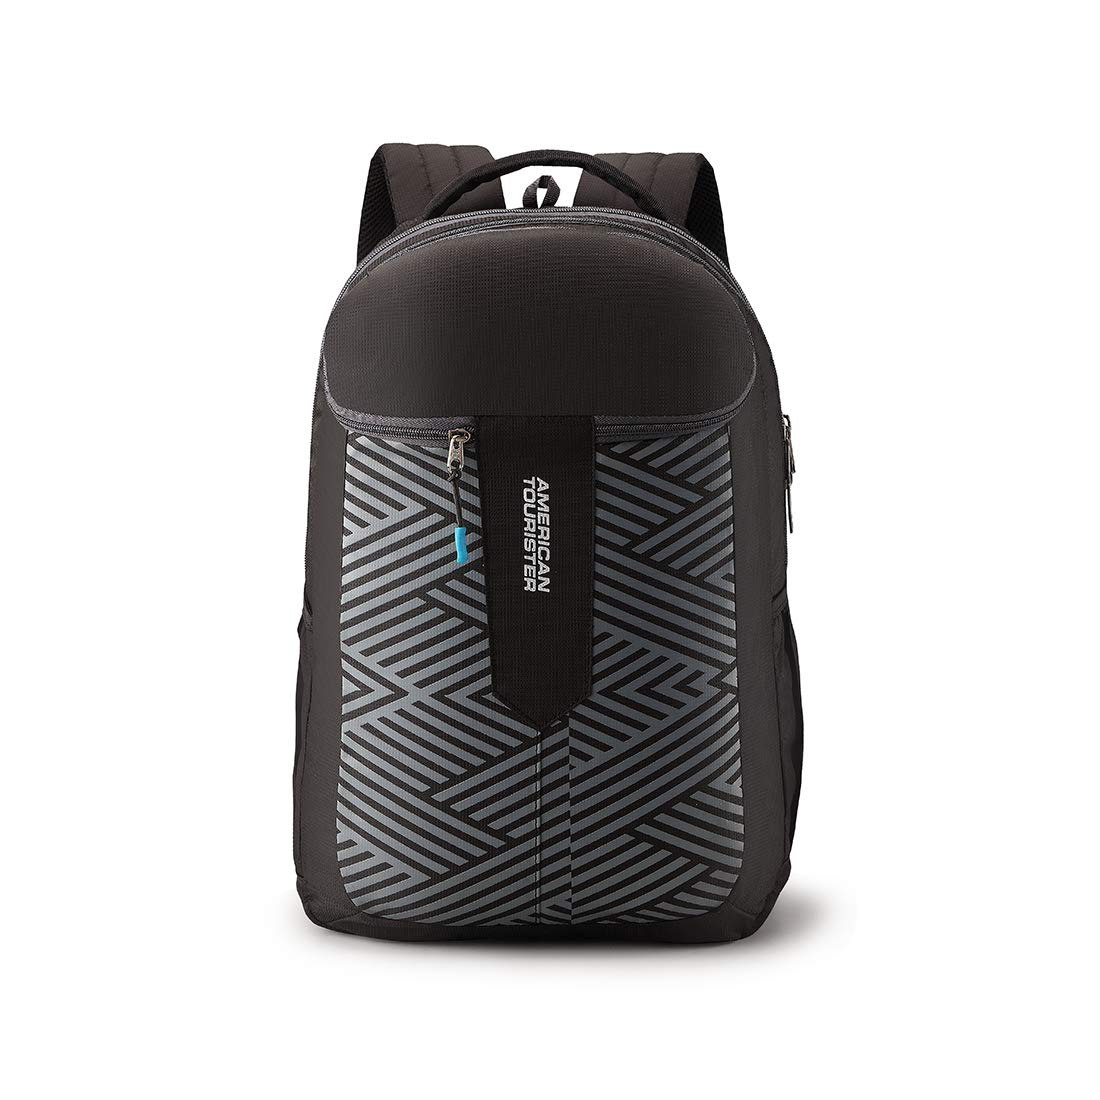 American Tourister Crone 29 Ltrs Black Casual Backpack (FG8